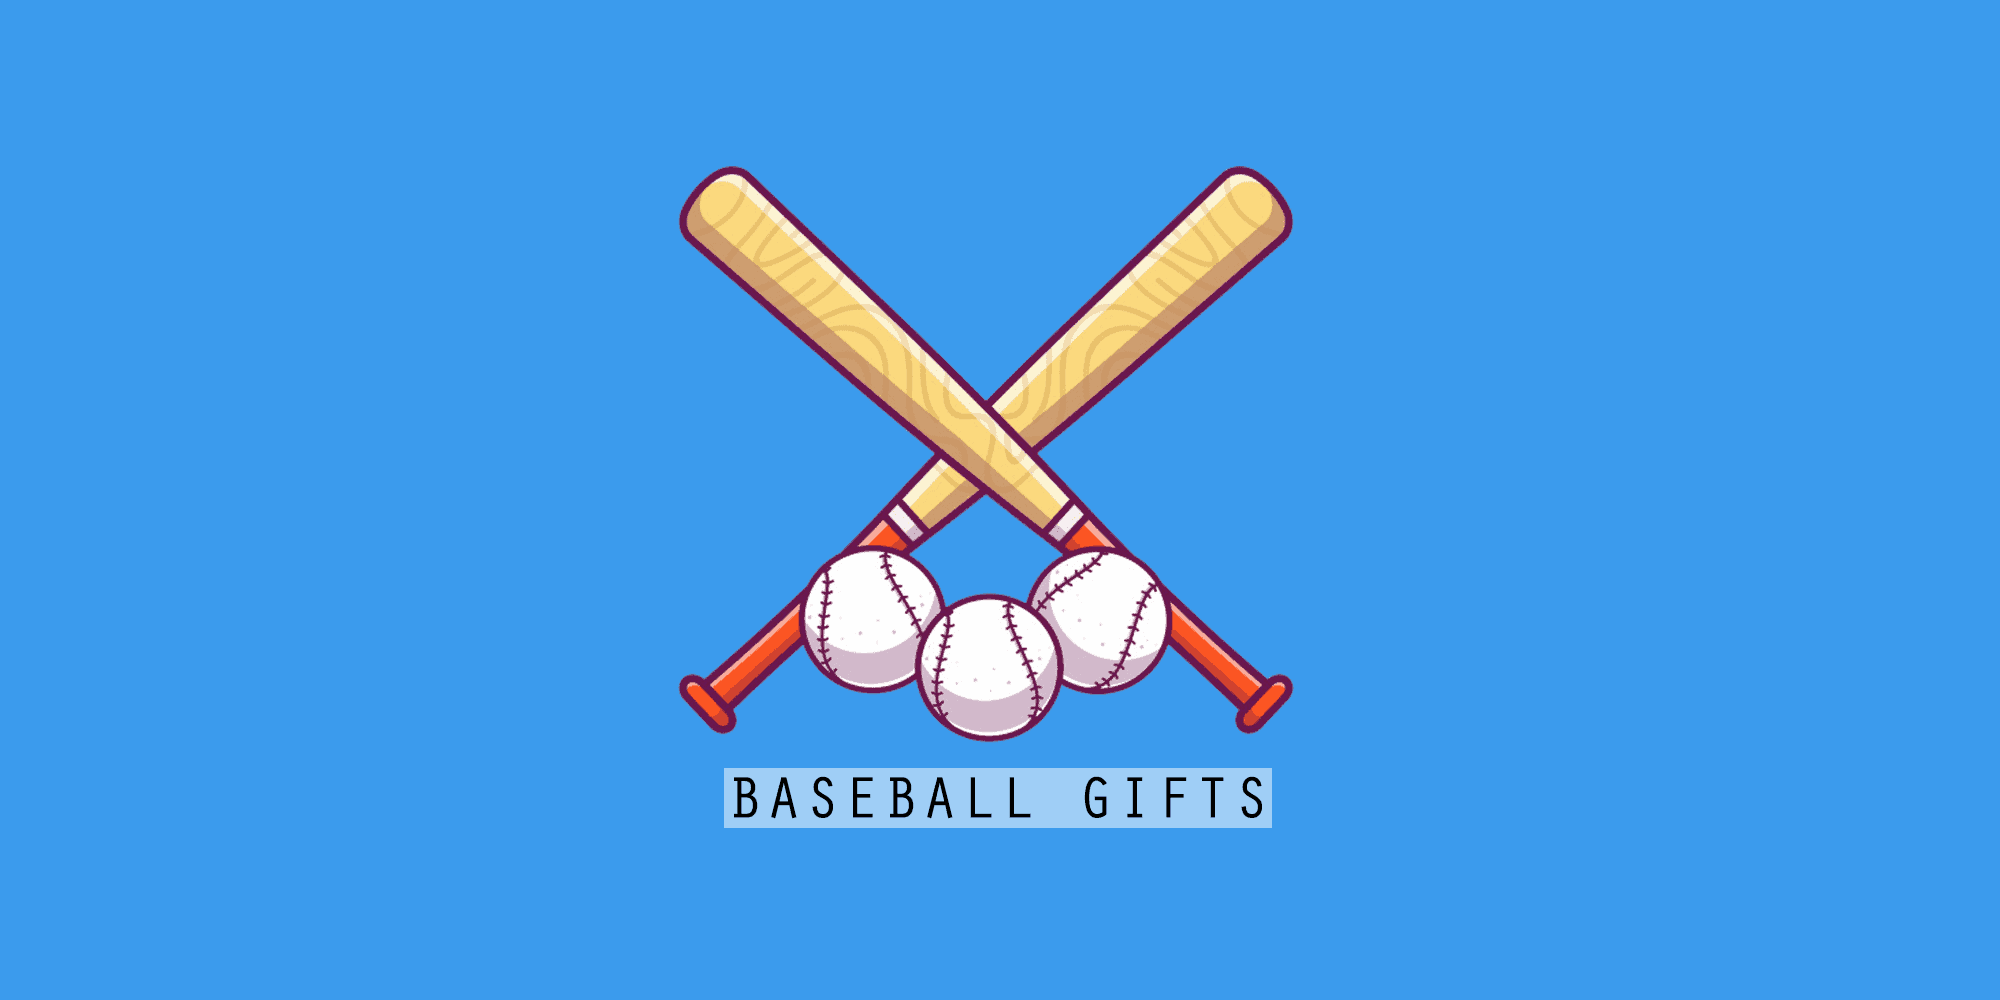 baseball gifts banner with baseball pats and ball